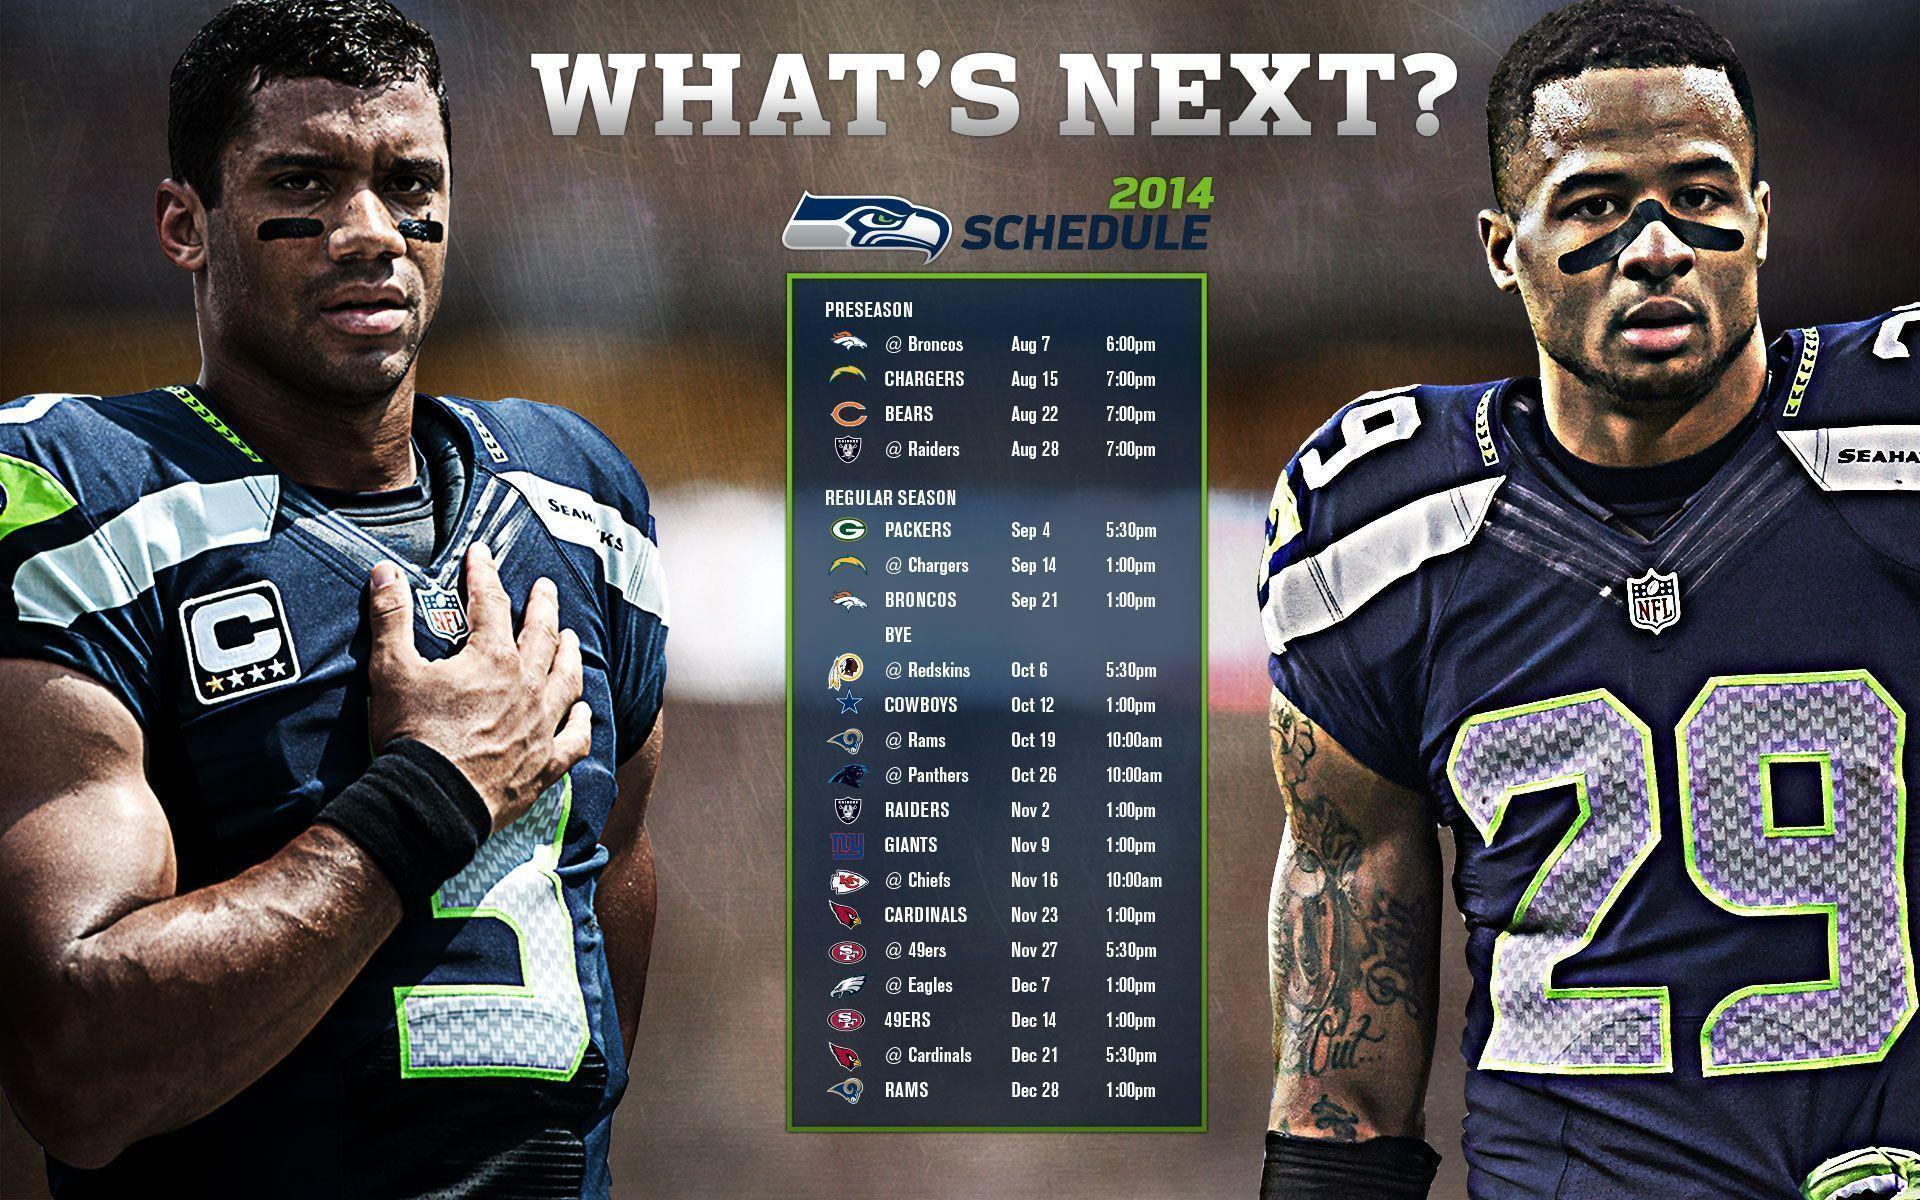 Seahawks kick off NFL schedule against Packers on Sept. 4